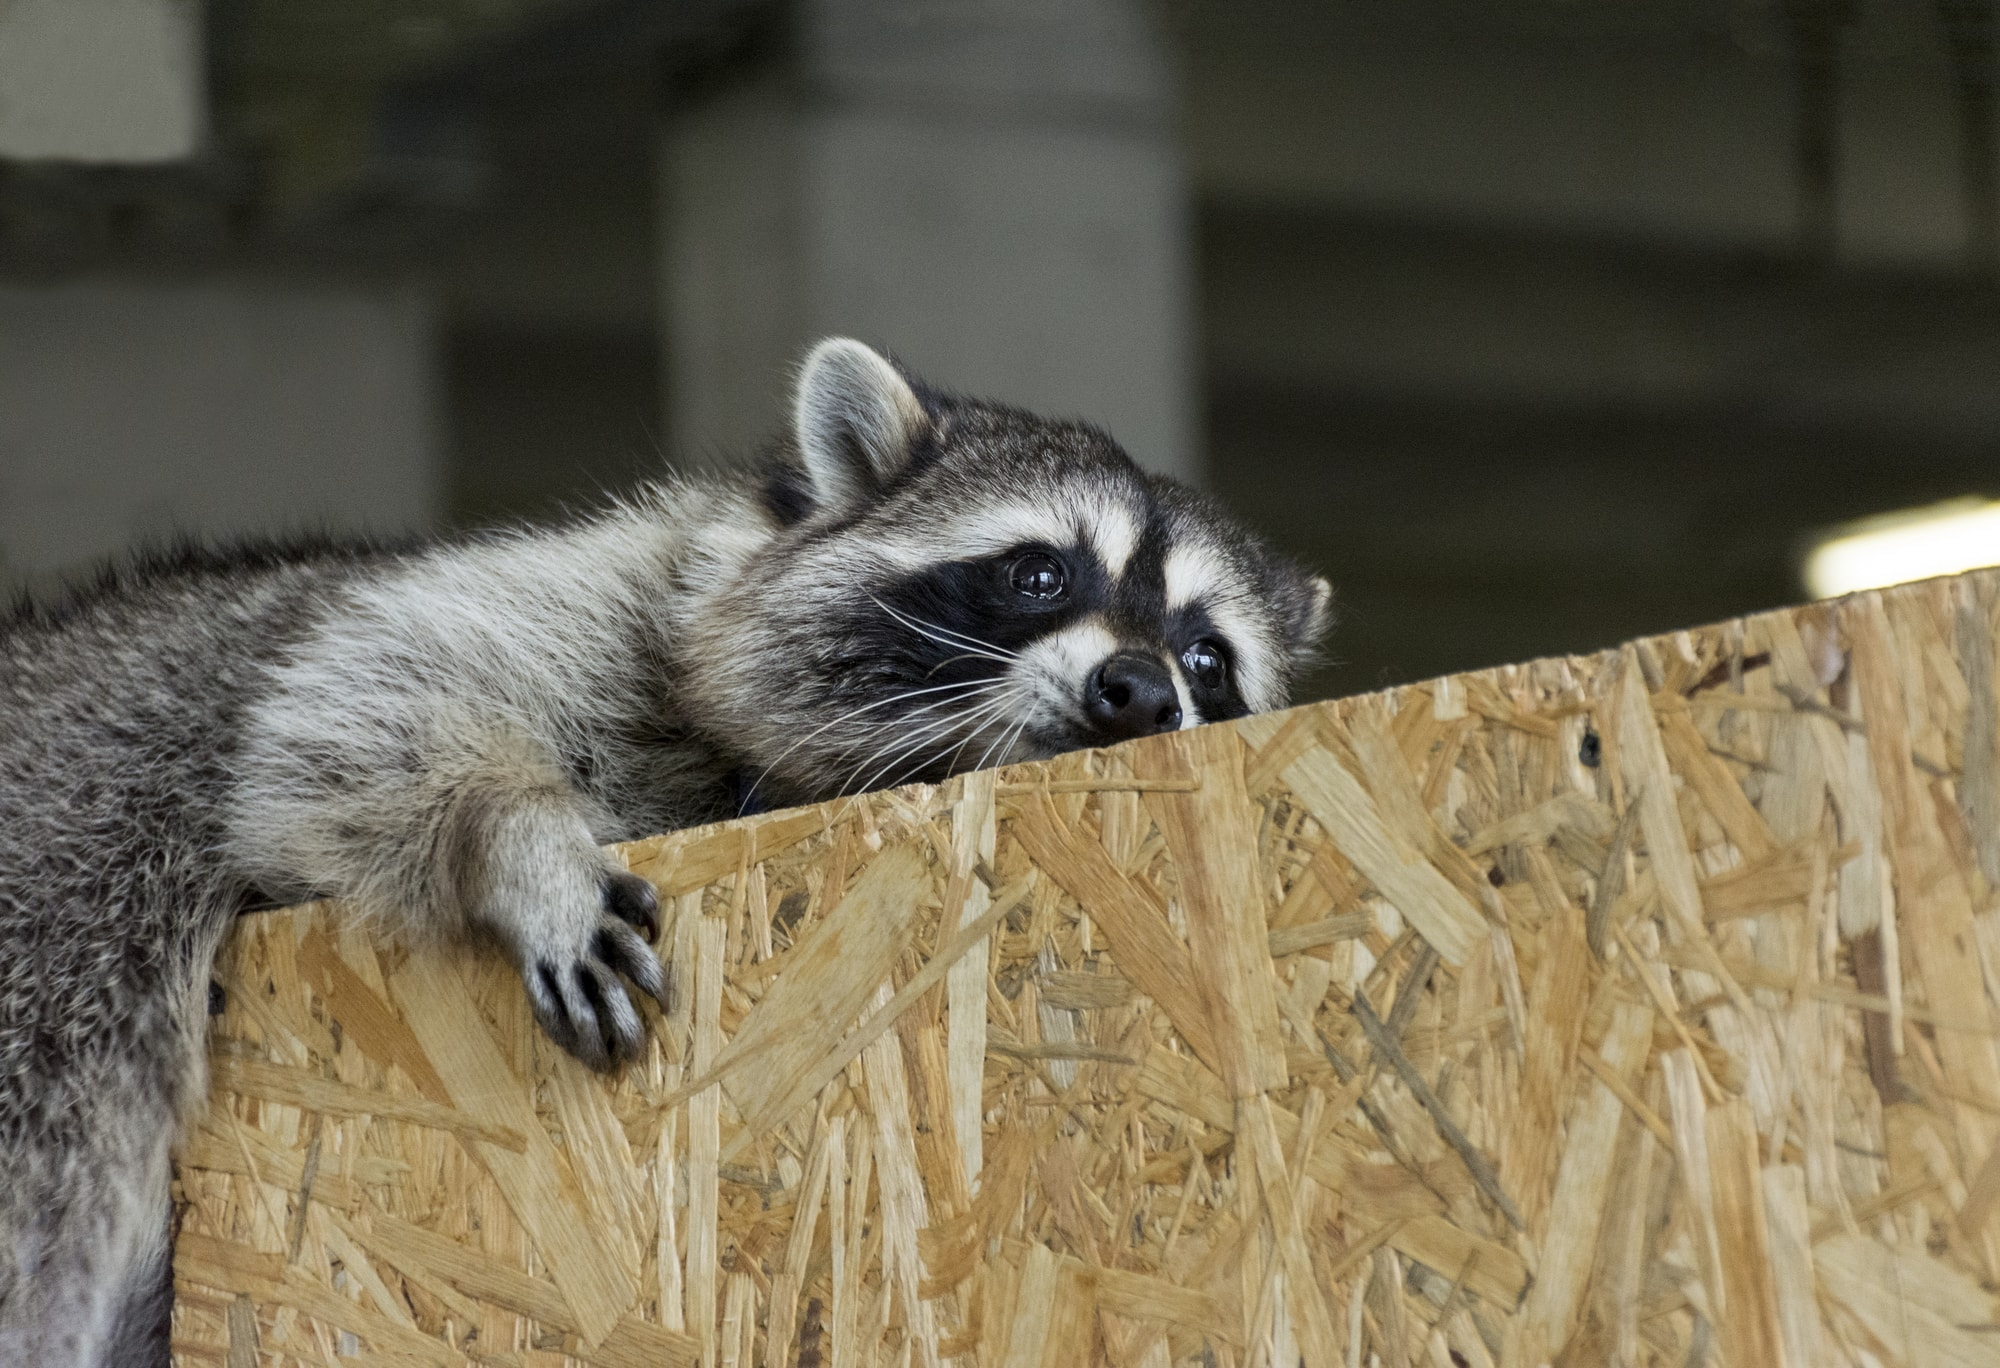 A racoon pest in a home attic may be a reason to call West Coast Junk for an attic clean out!